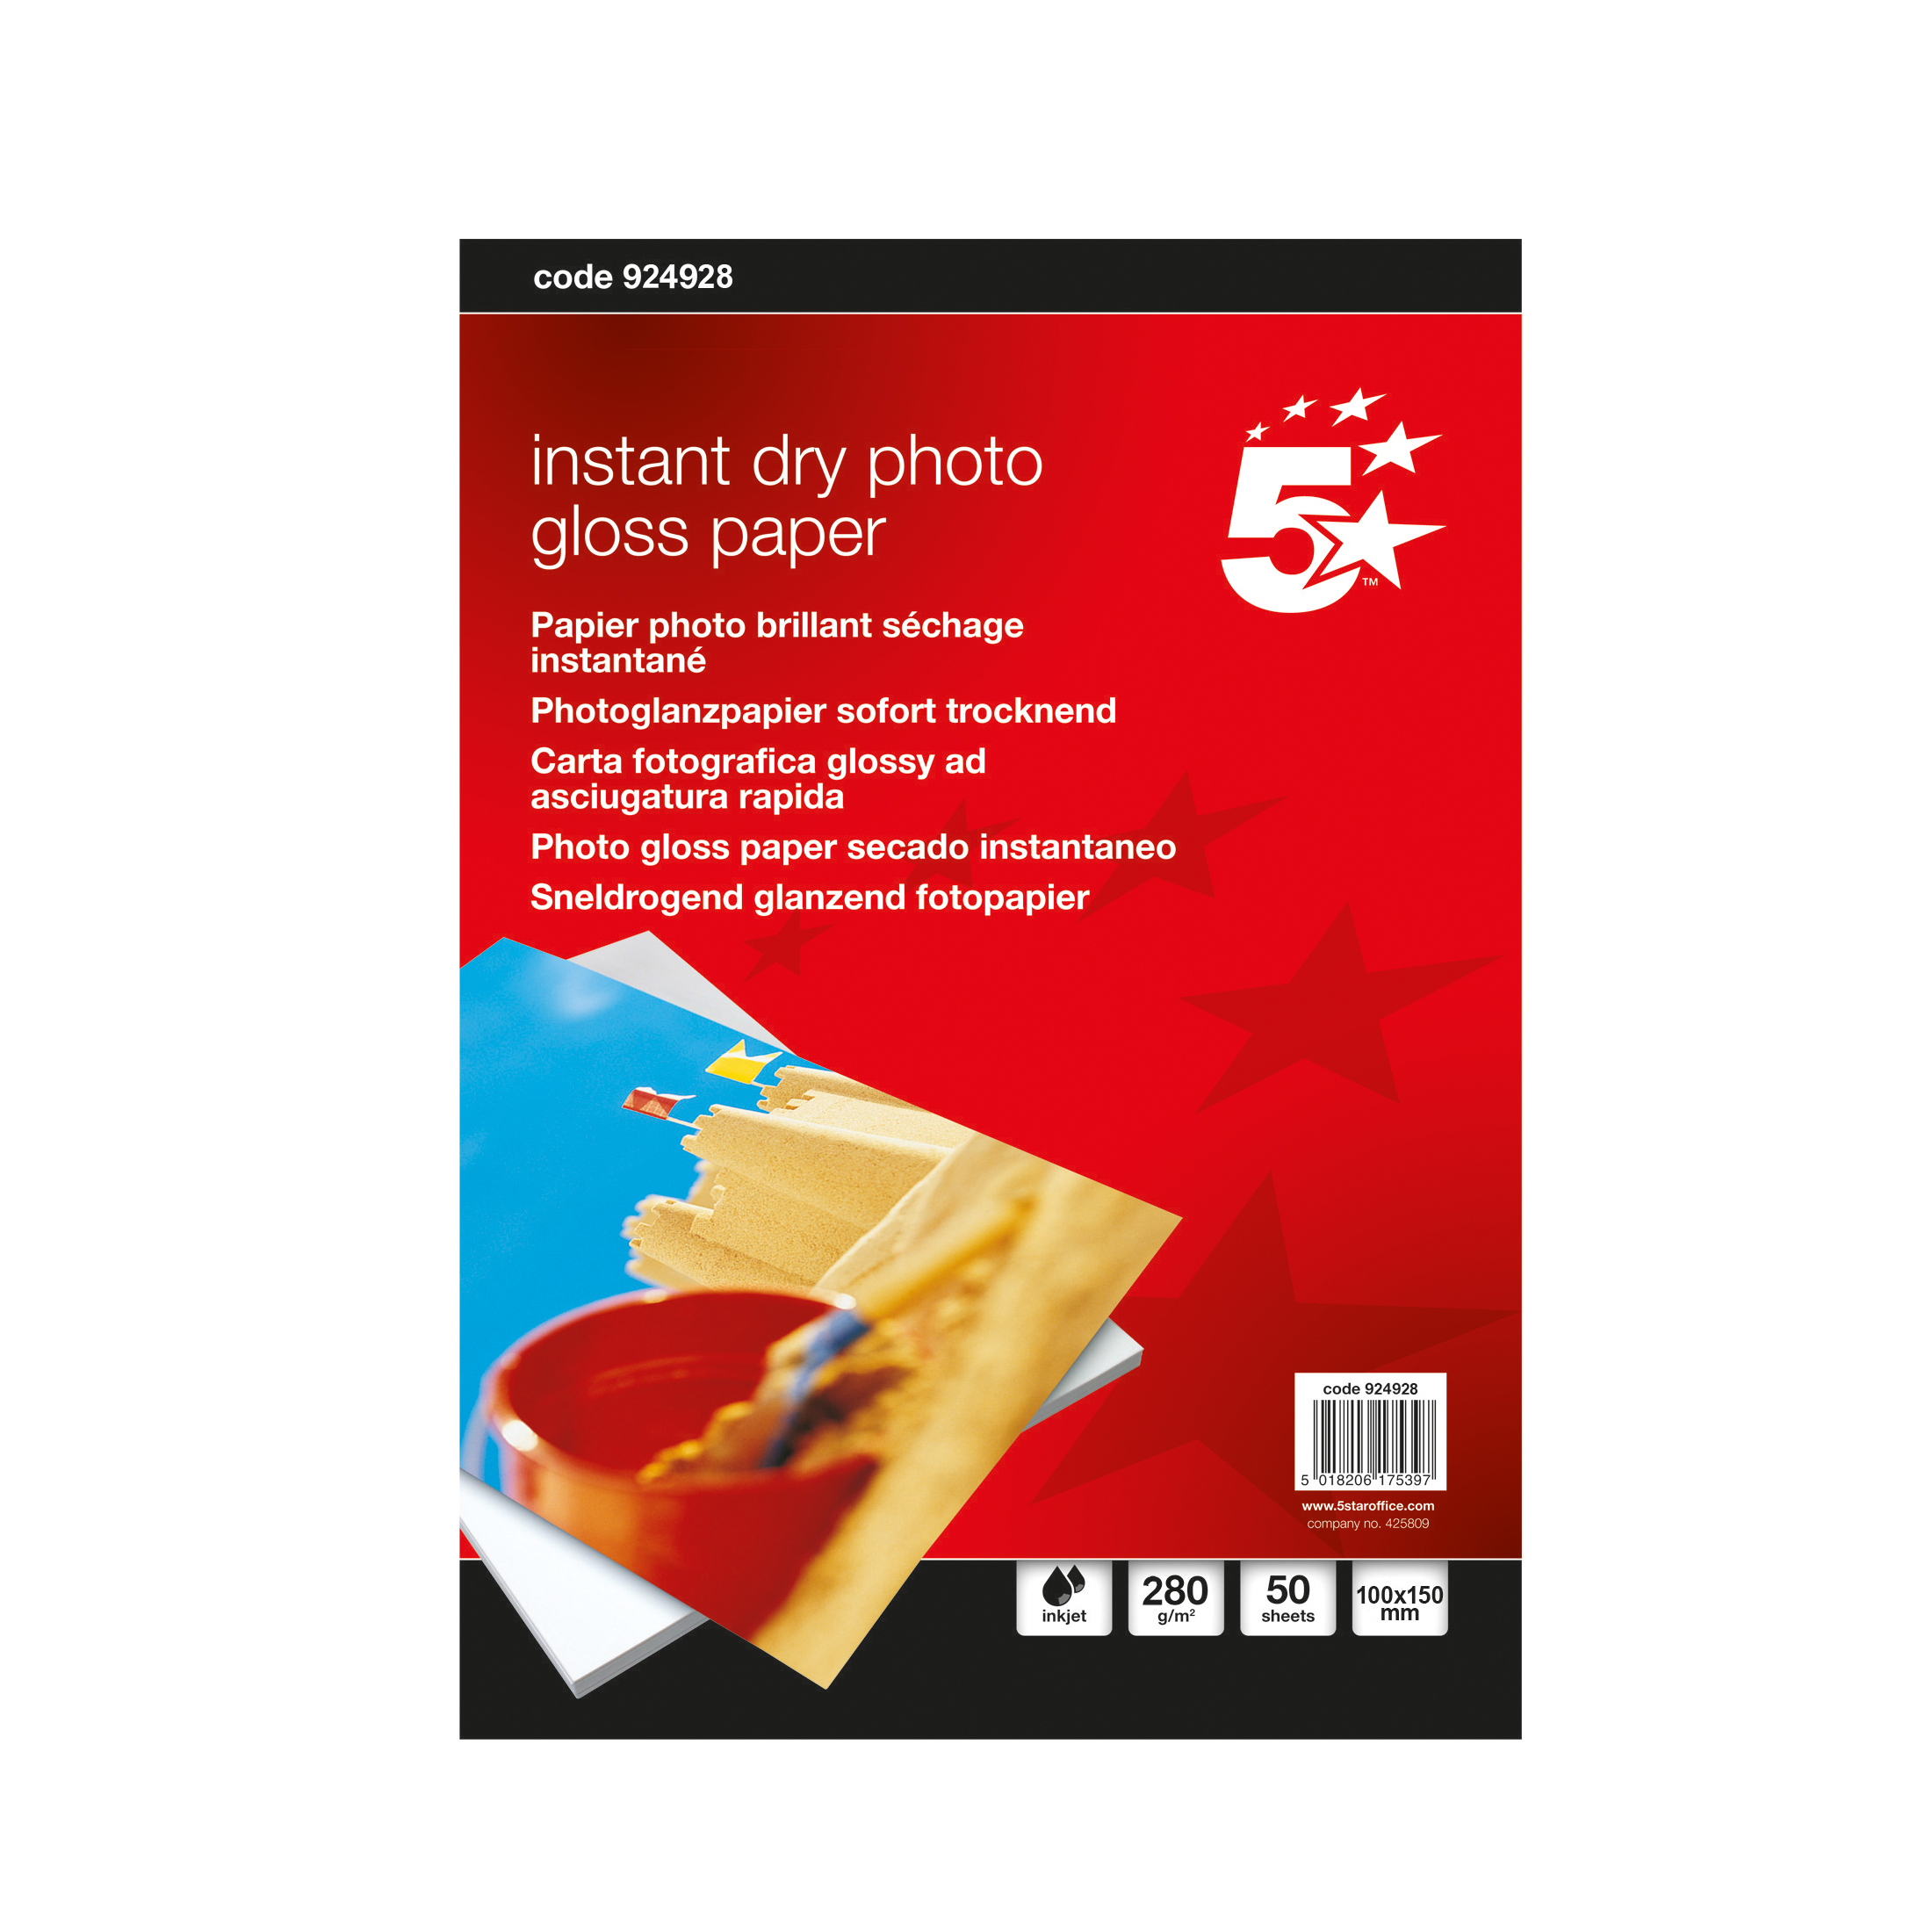 5 Star Office Paper Inkjet Photo Gloss Fast Drying 280gsm 100x150mm 50 Sheets